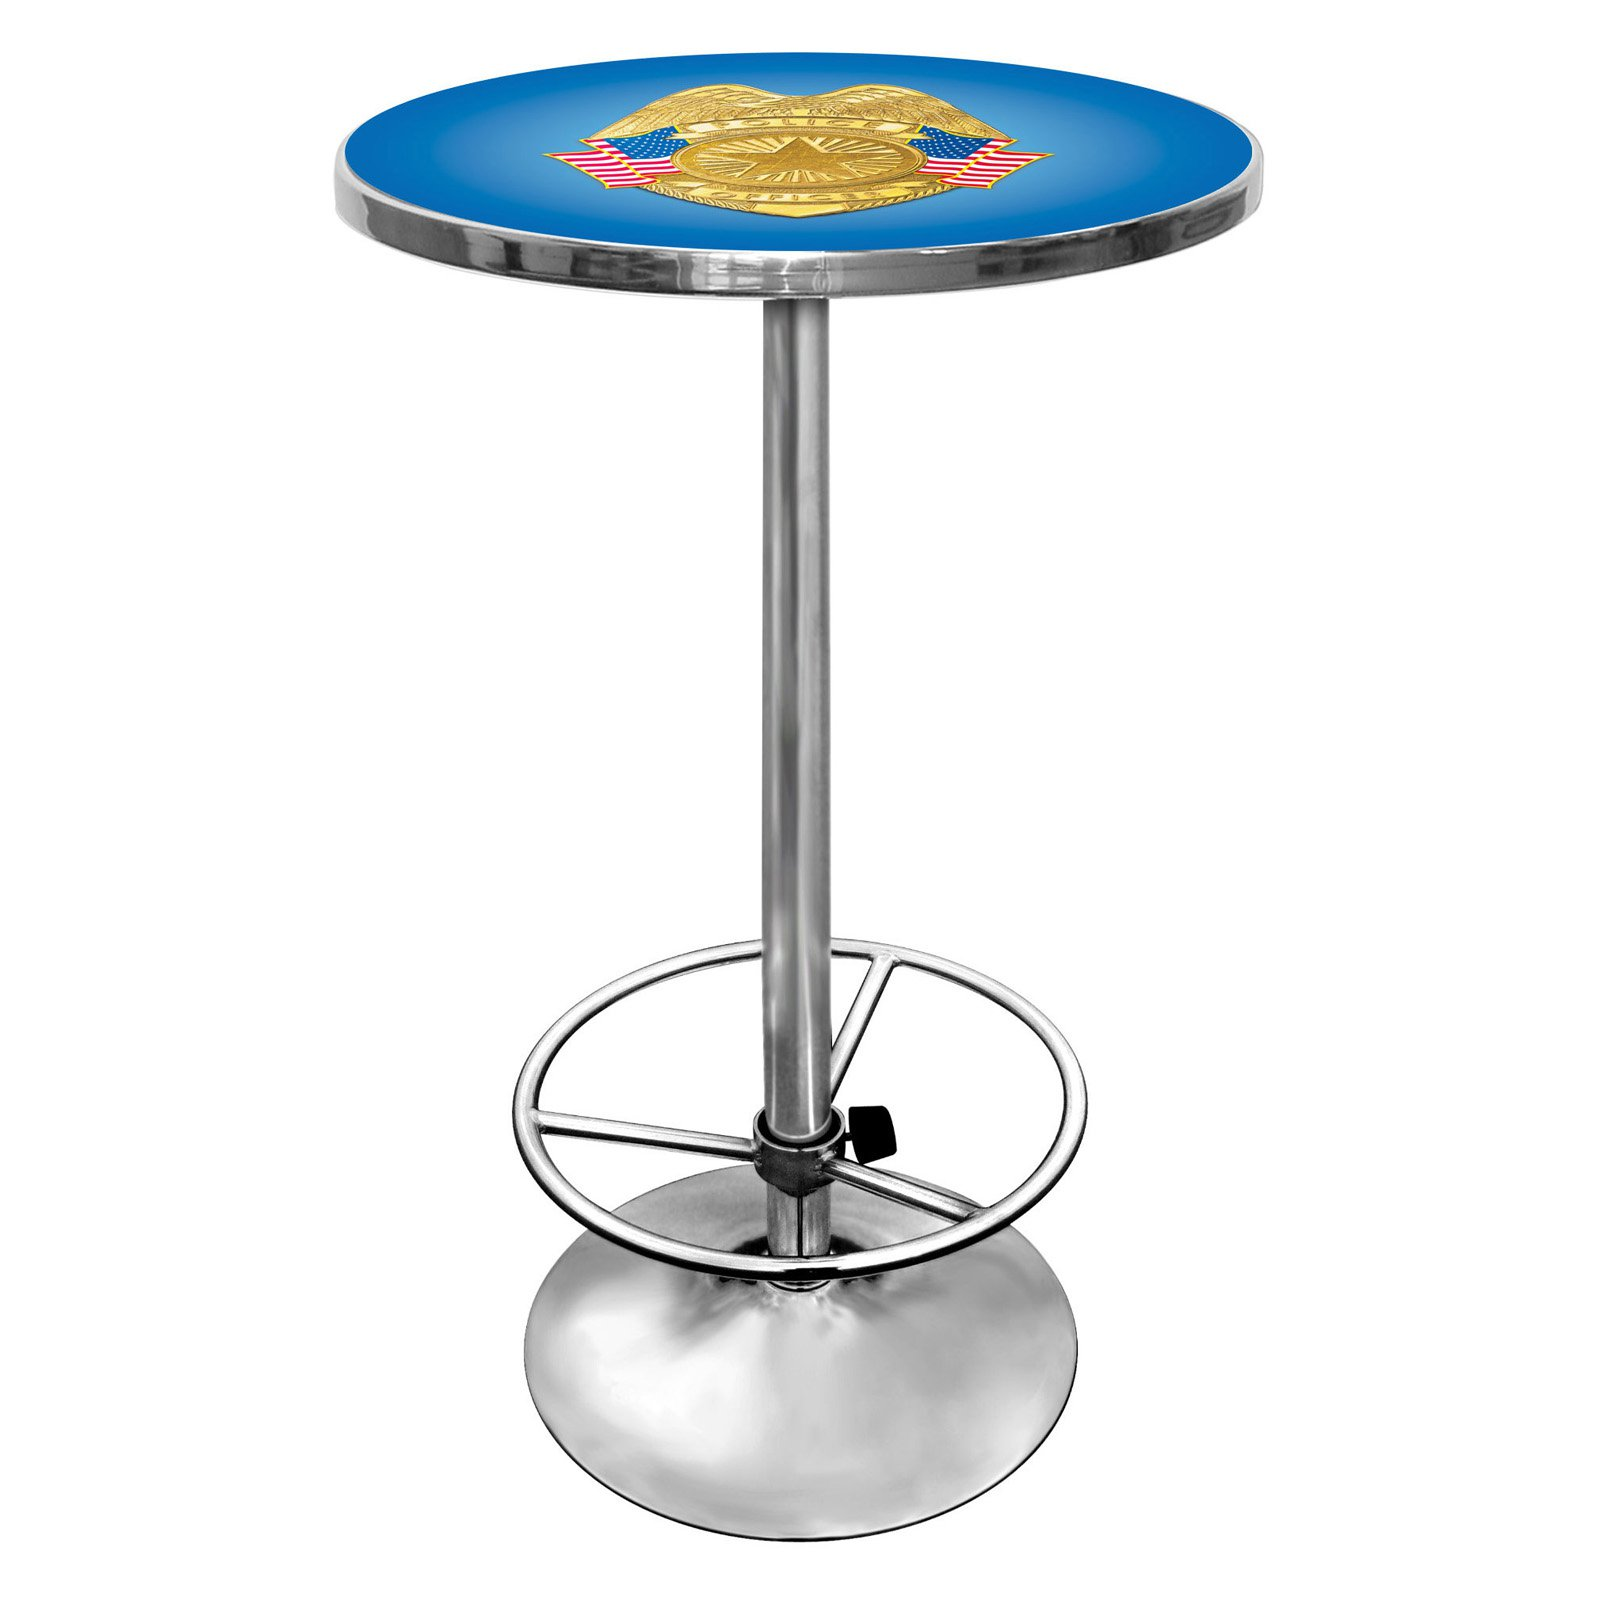 "Trademark Police Officer 42"" Pub Table, Chrome"